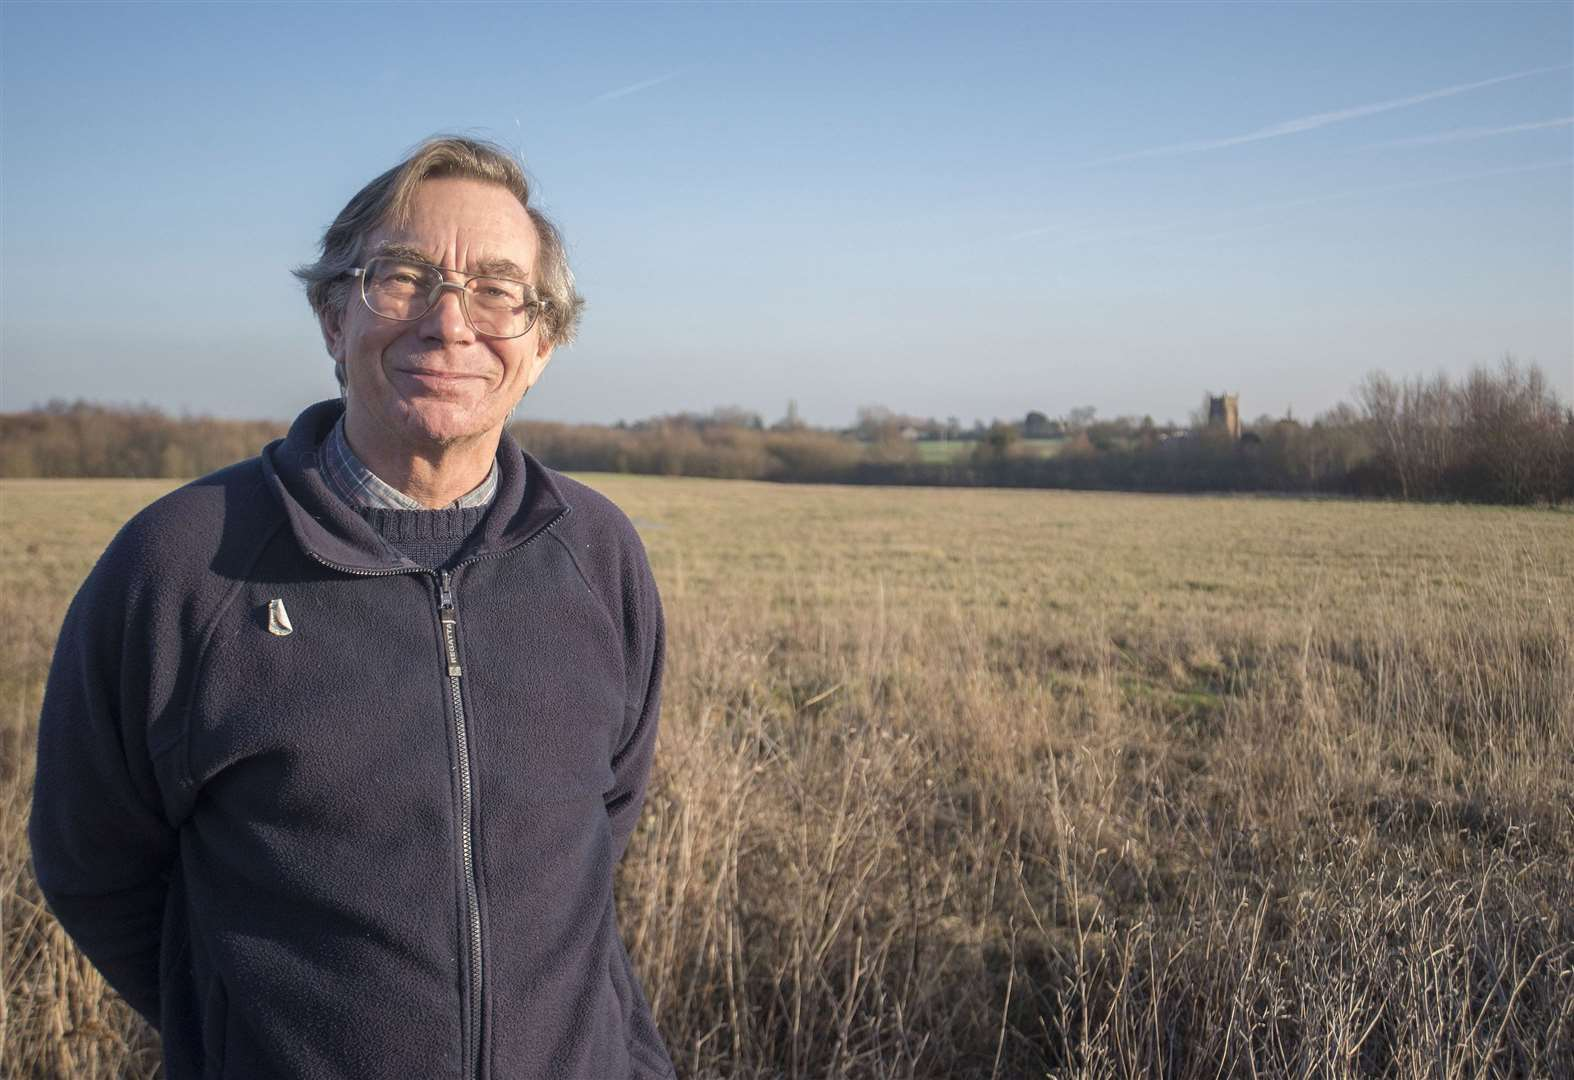 Residents' association formed in Great Cornard to fight against 'unsustainable' development plans